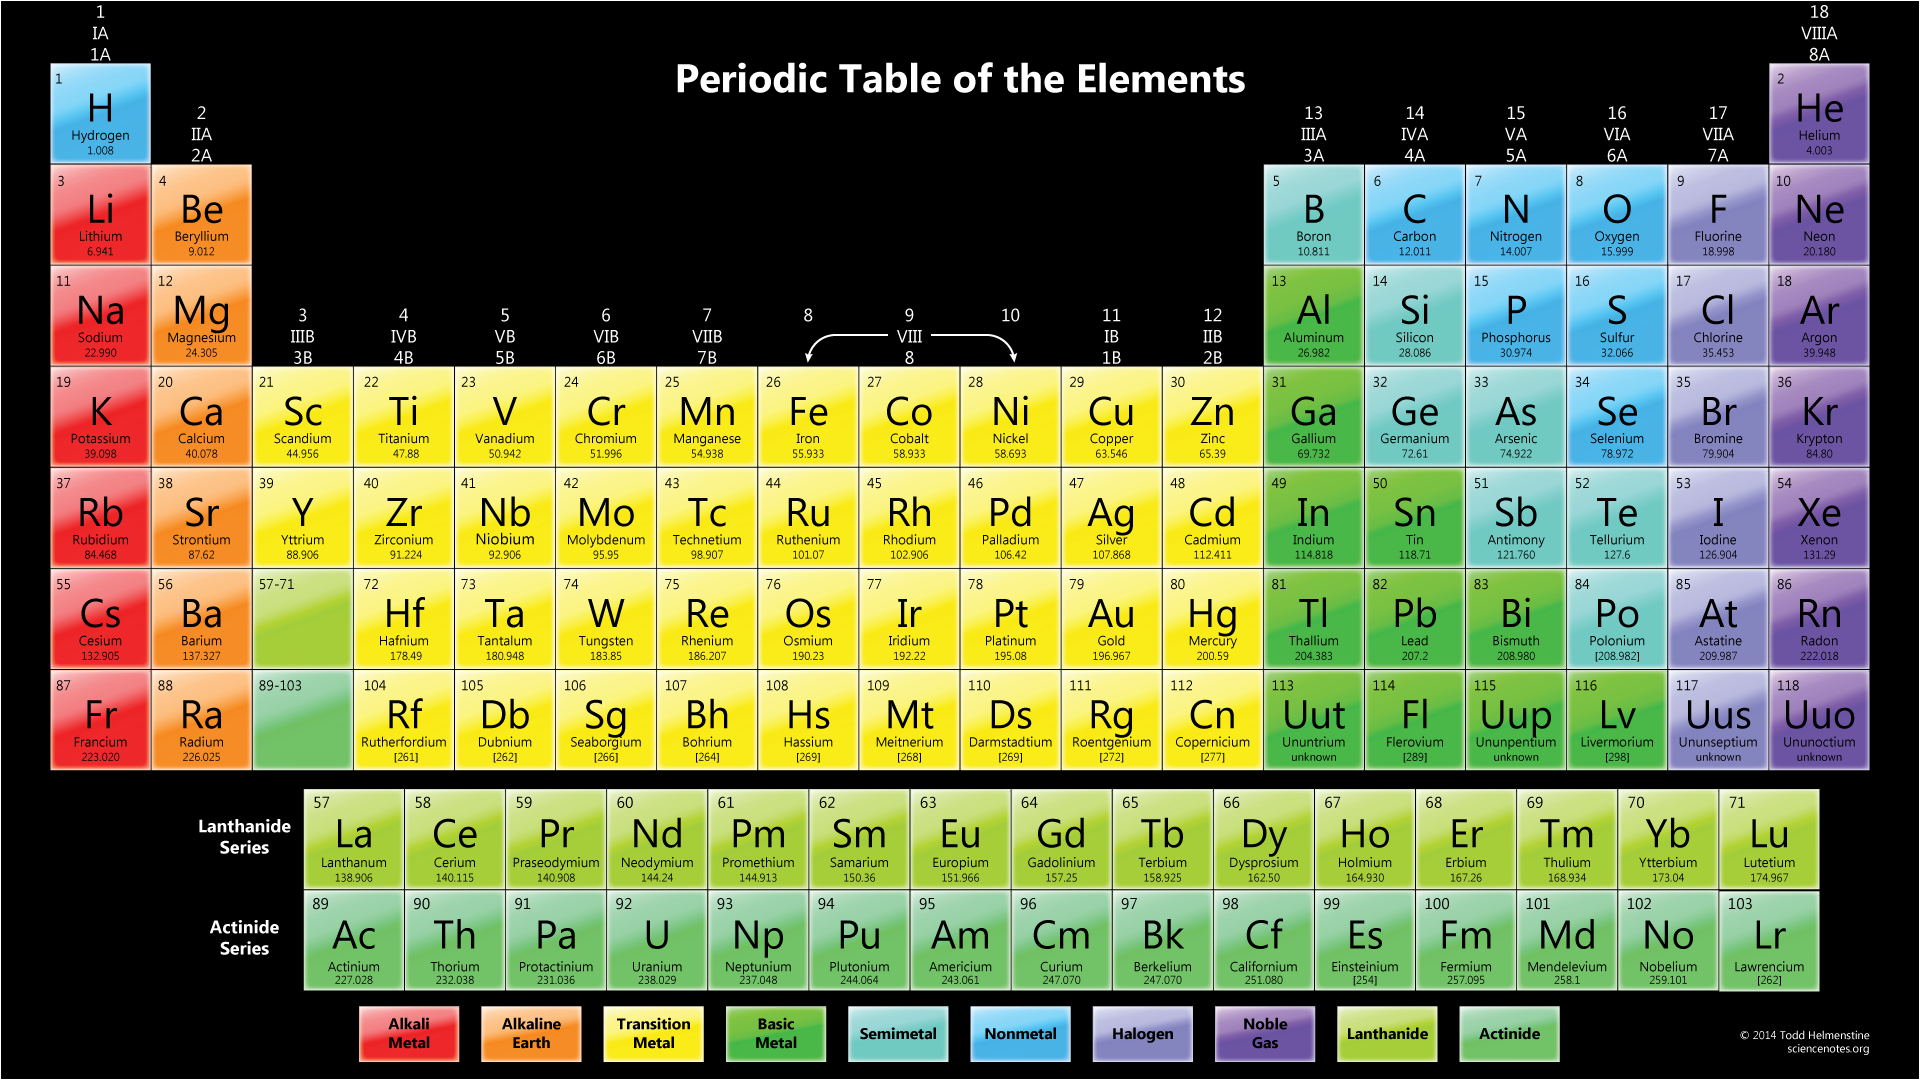 Element w periodic table images periodic table images printable periodic table with element names gallery periodic periodic table of elements with names pdf image gamestrikefo Choice Image